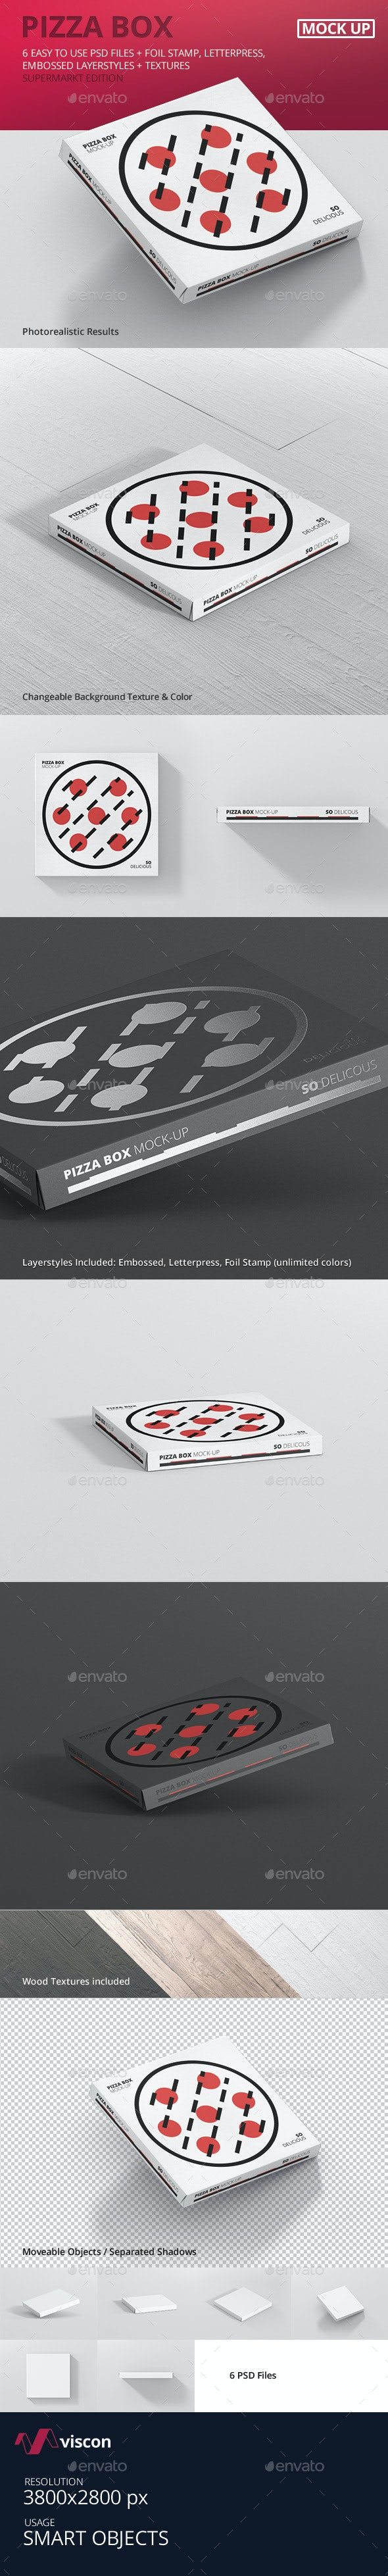 Pizza Box Mock-Up - Supermarket Edition - Food and Drink Packaging